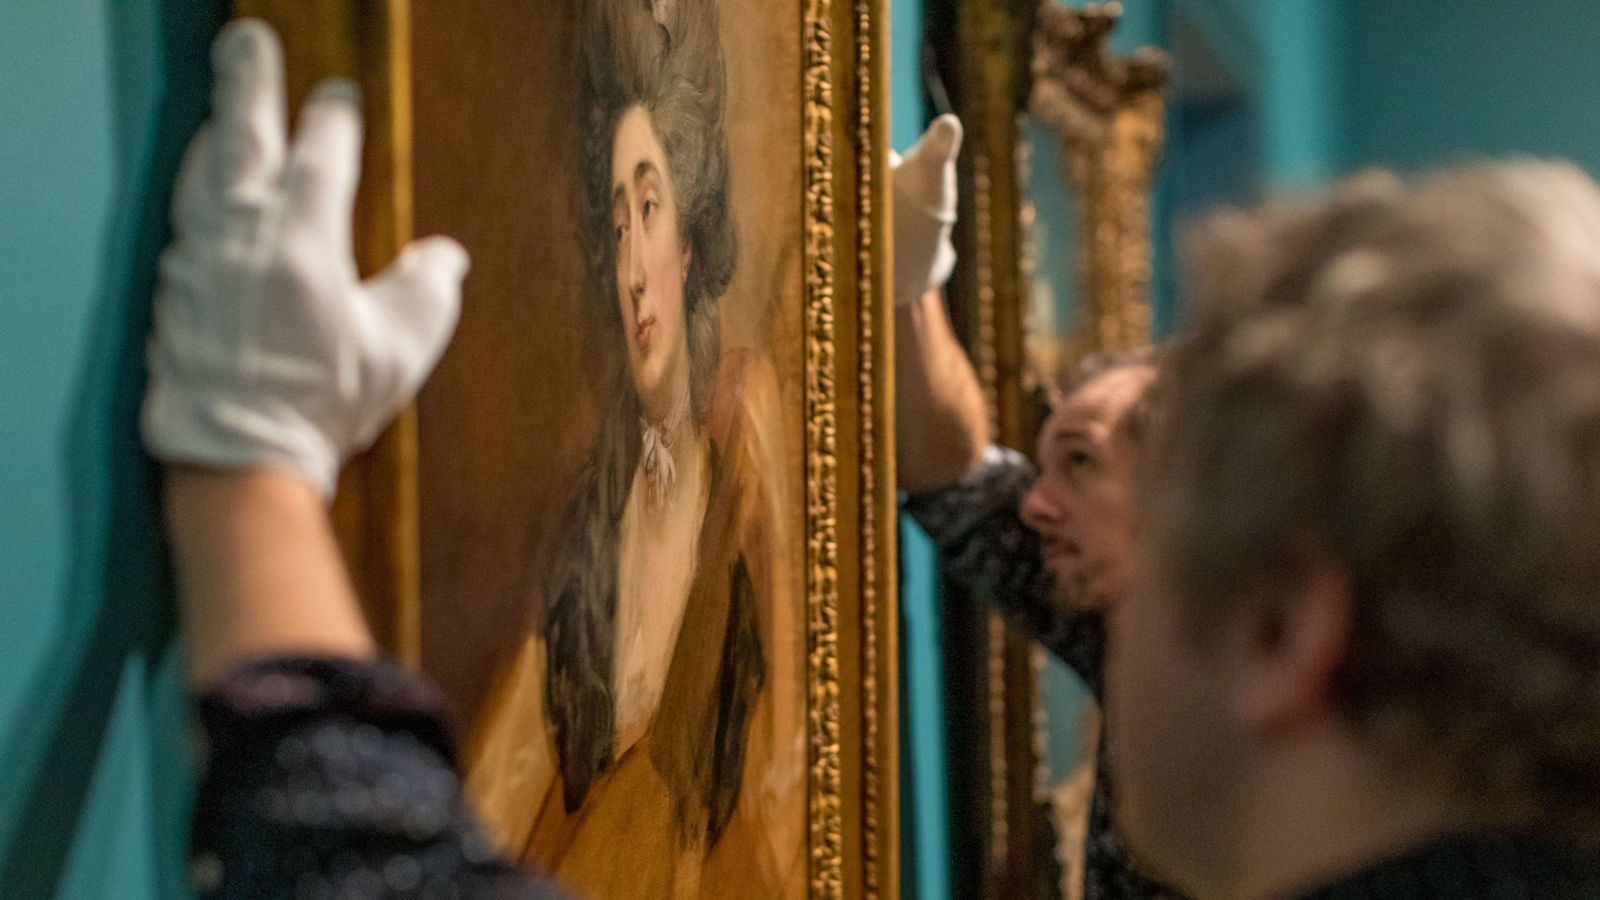 Gainsborough art rediscovered thanks to Country Life ad